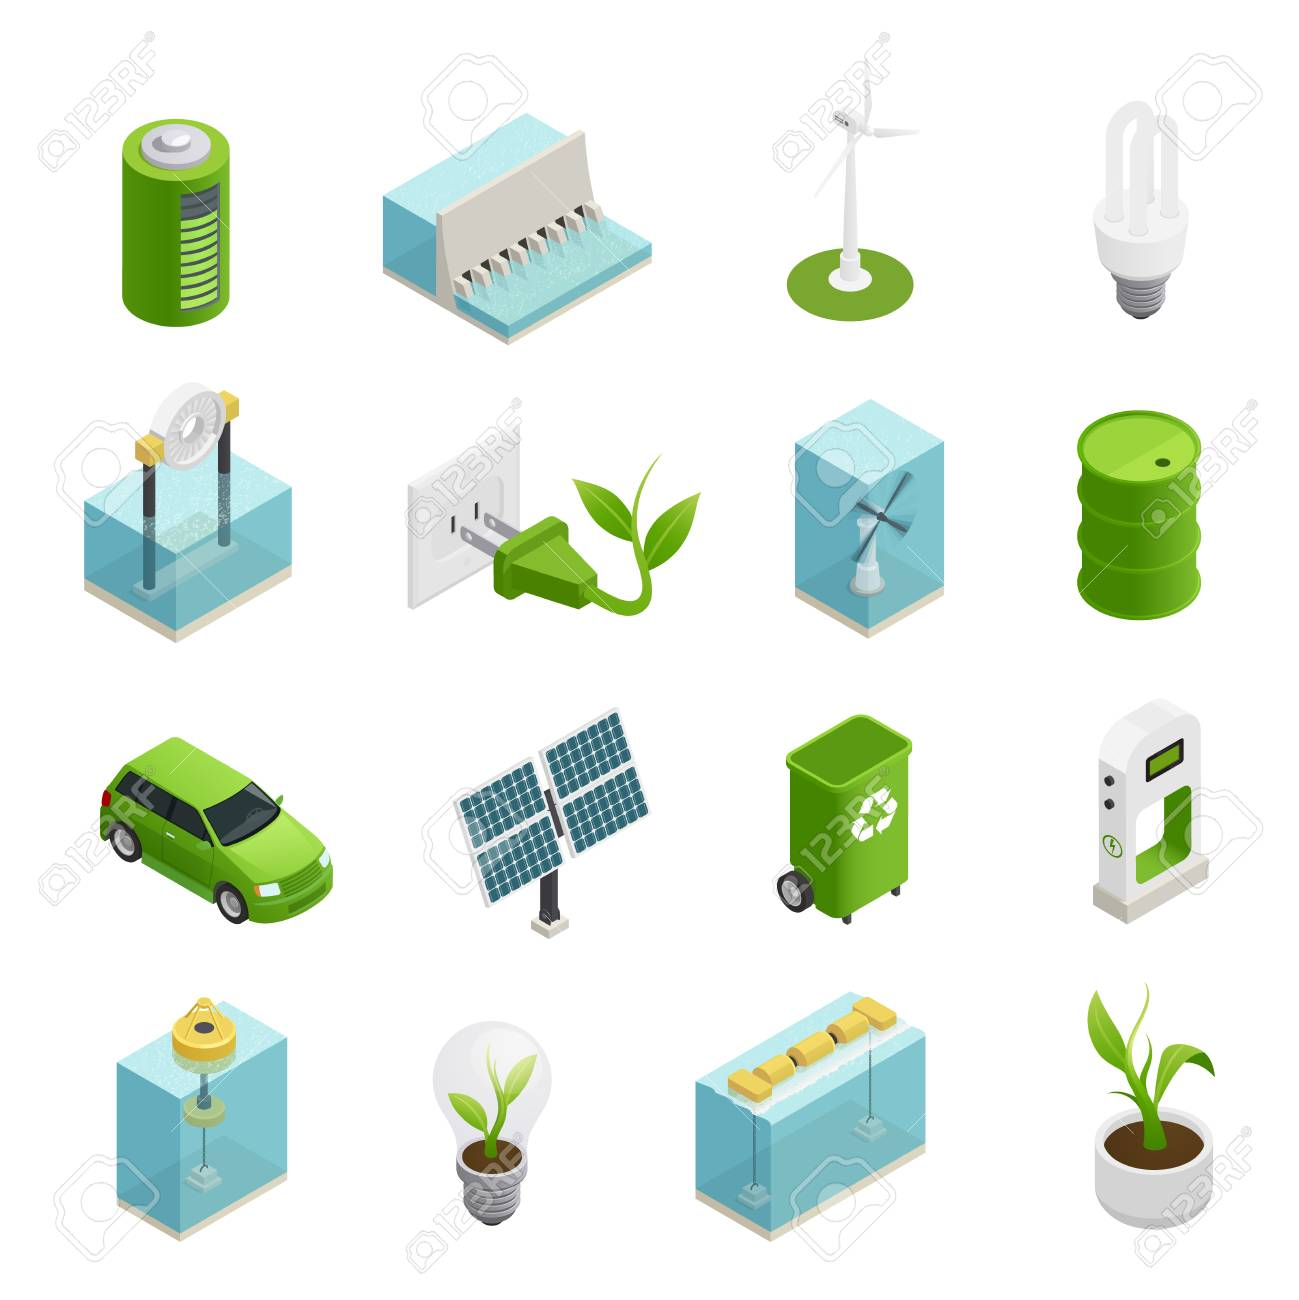 Renewable green energy sources technologies symbols and uses variaties isometric icons collection isolated vector illustration - 88462957